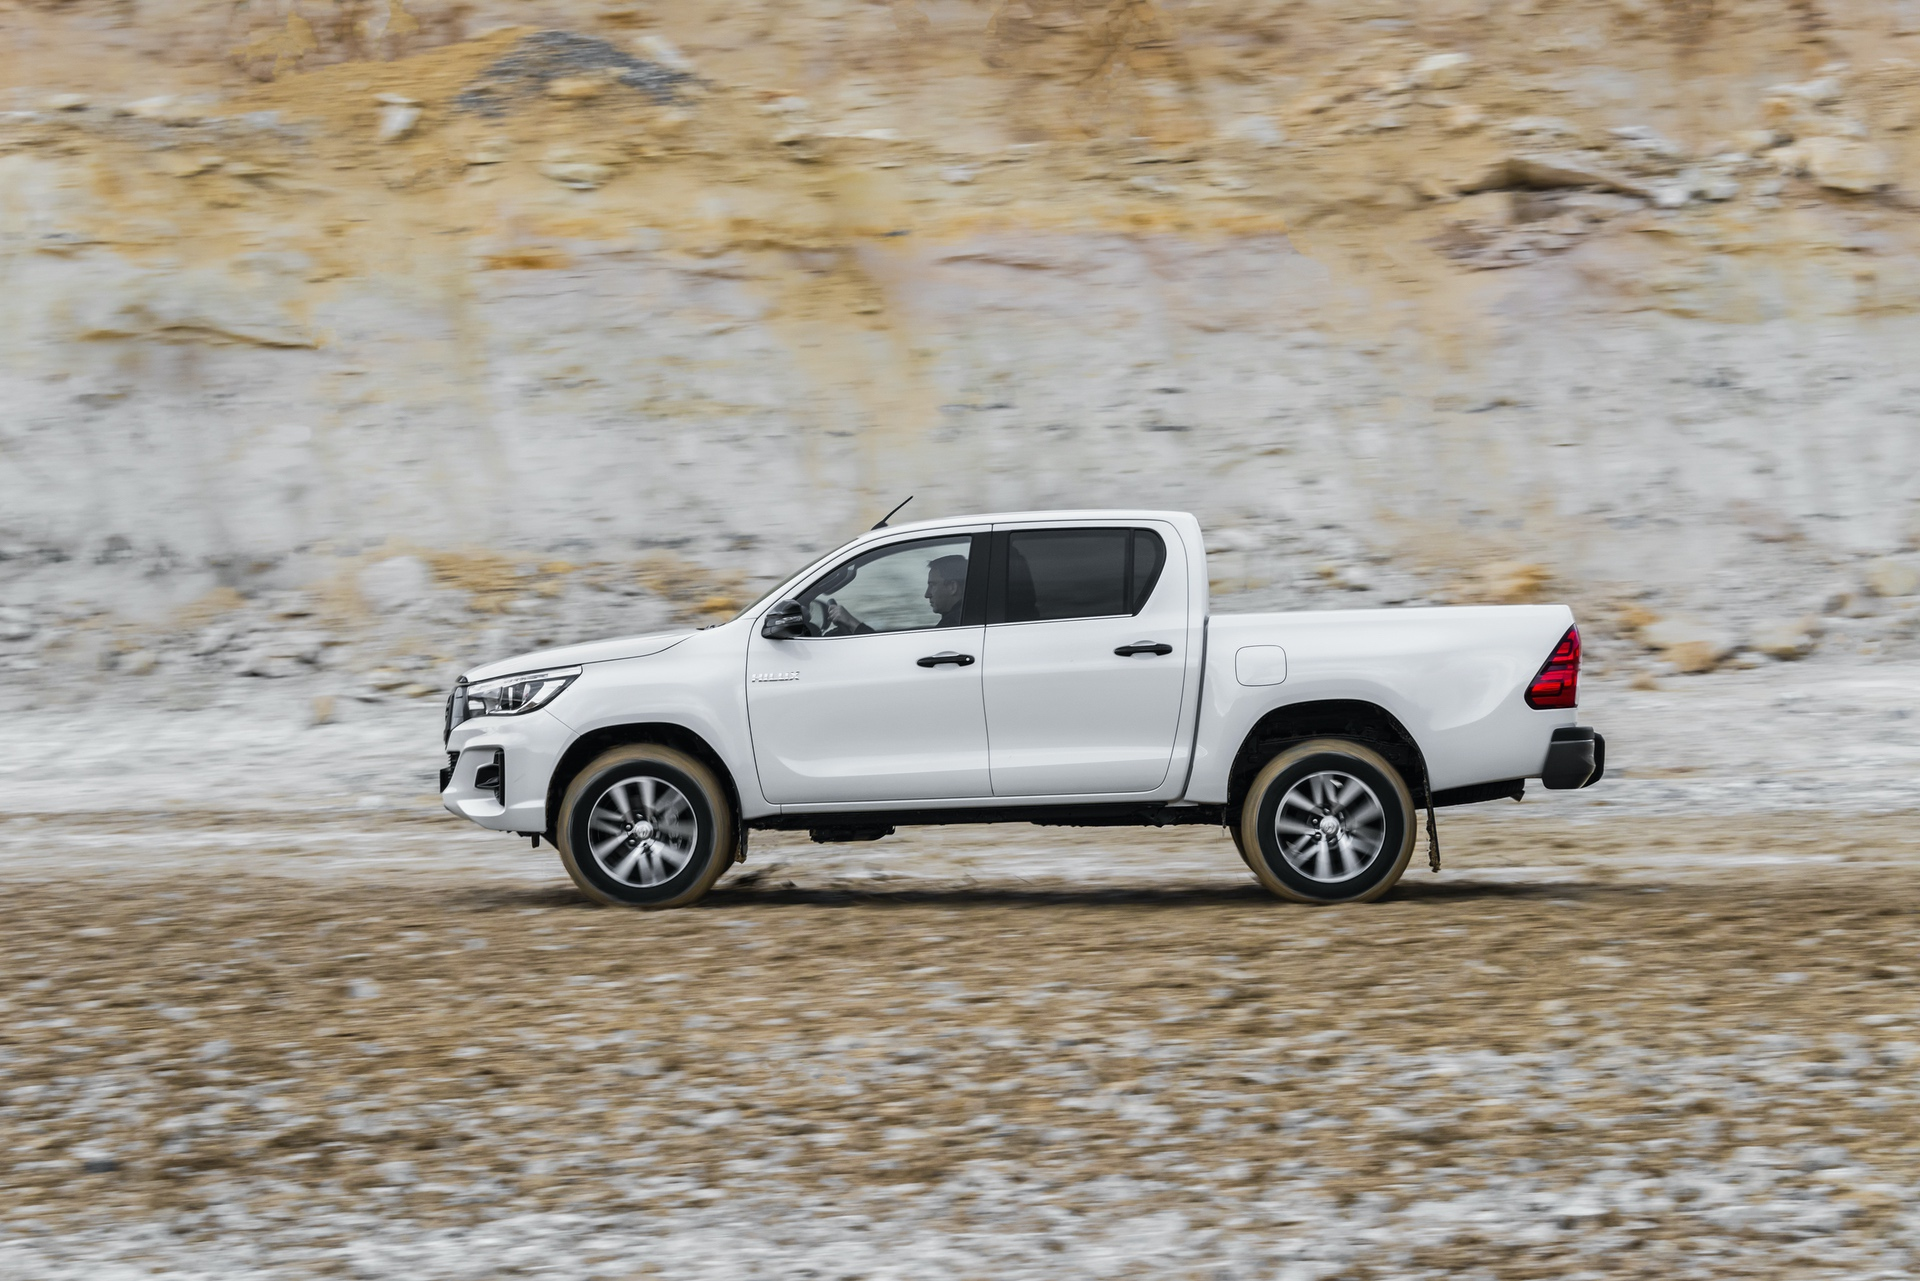 Toyota_Hilux_Special_Edition_0046